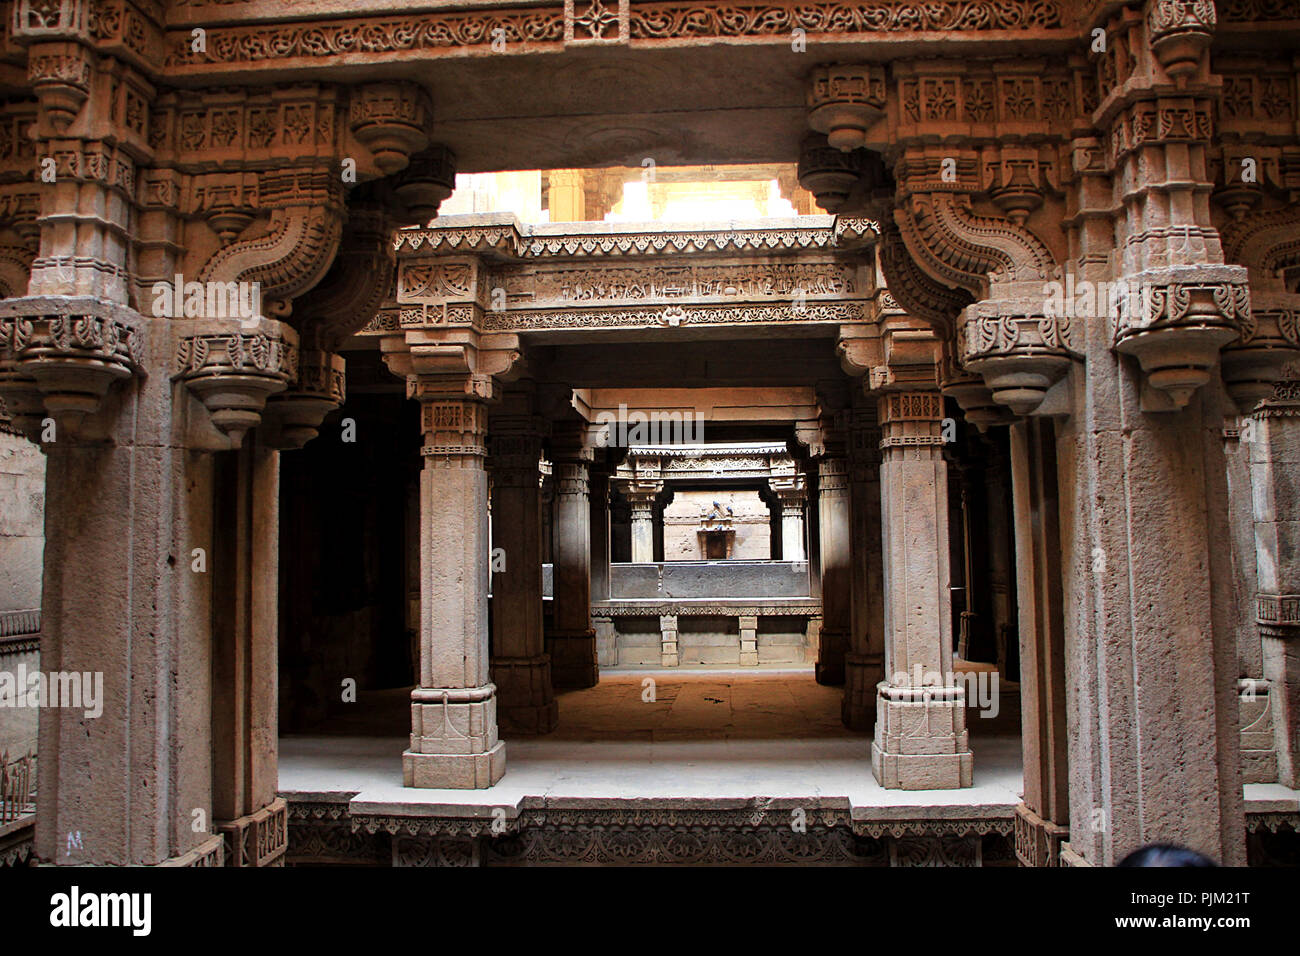 Perspective close up of stone pillared canopy over Adalaj Step Well at Ahmedabad, Gujarath, India, Asia - Stock Image